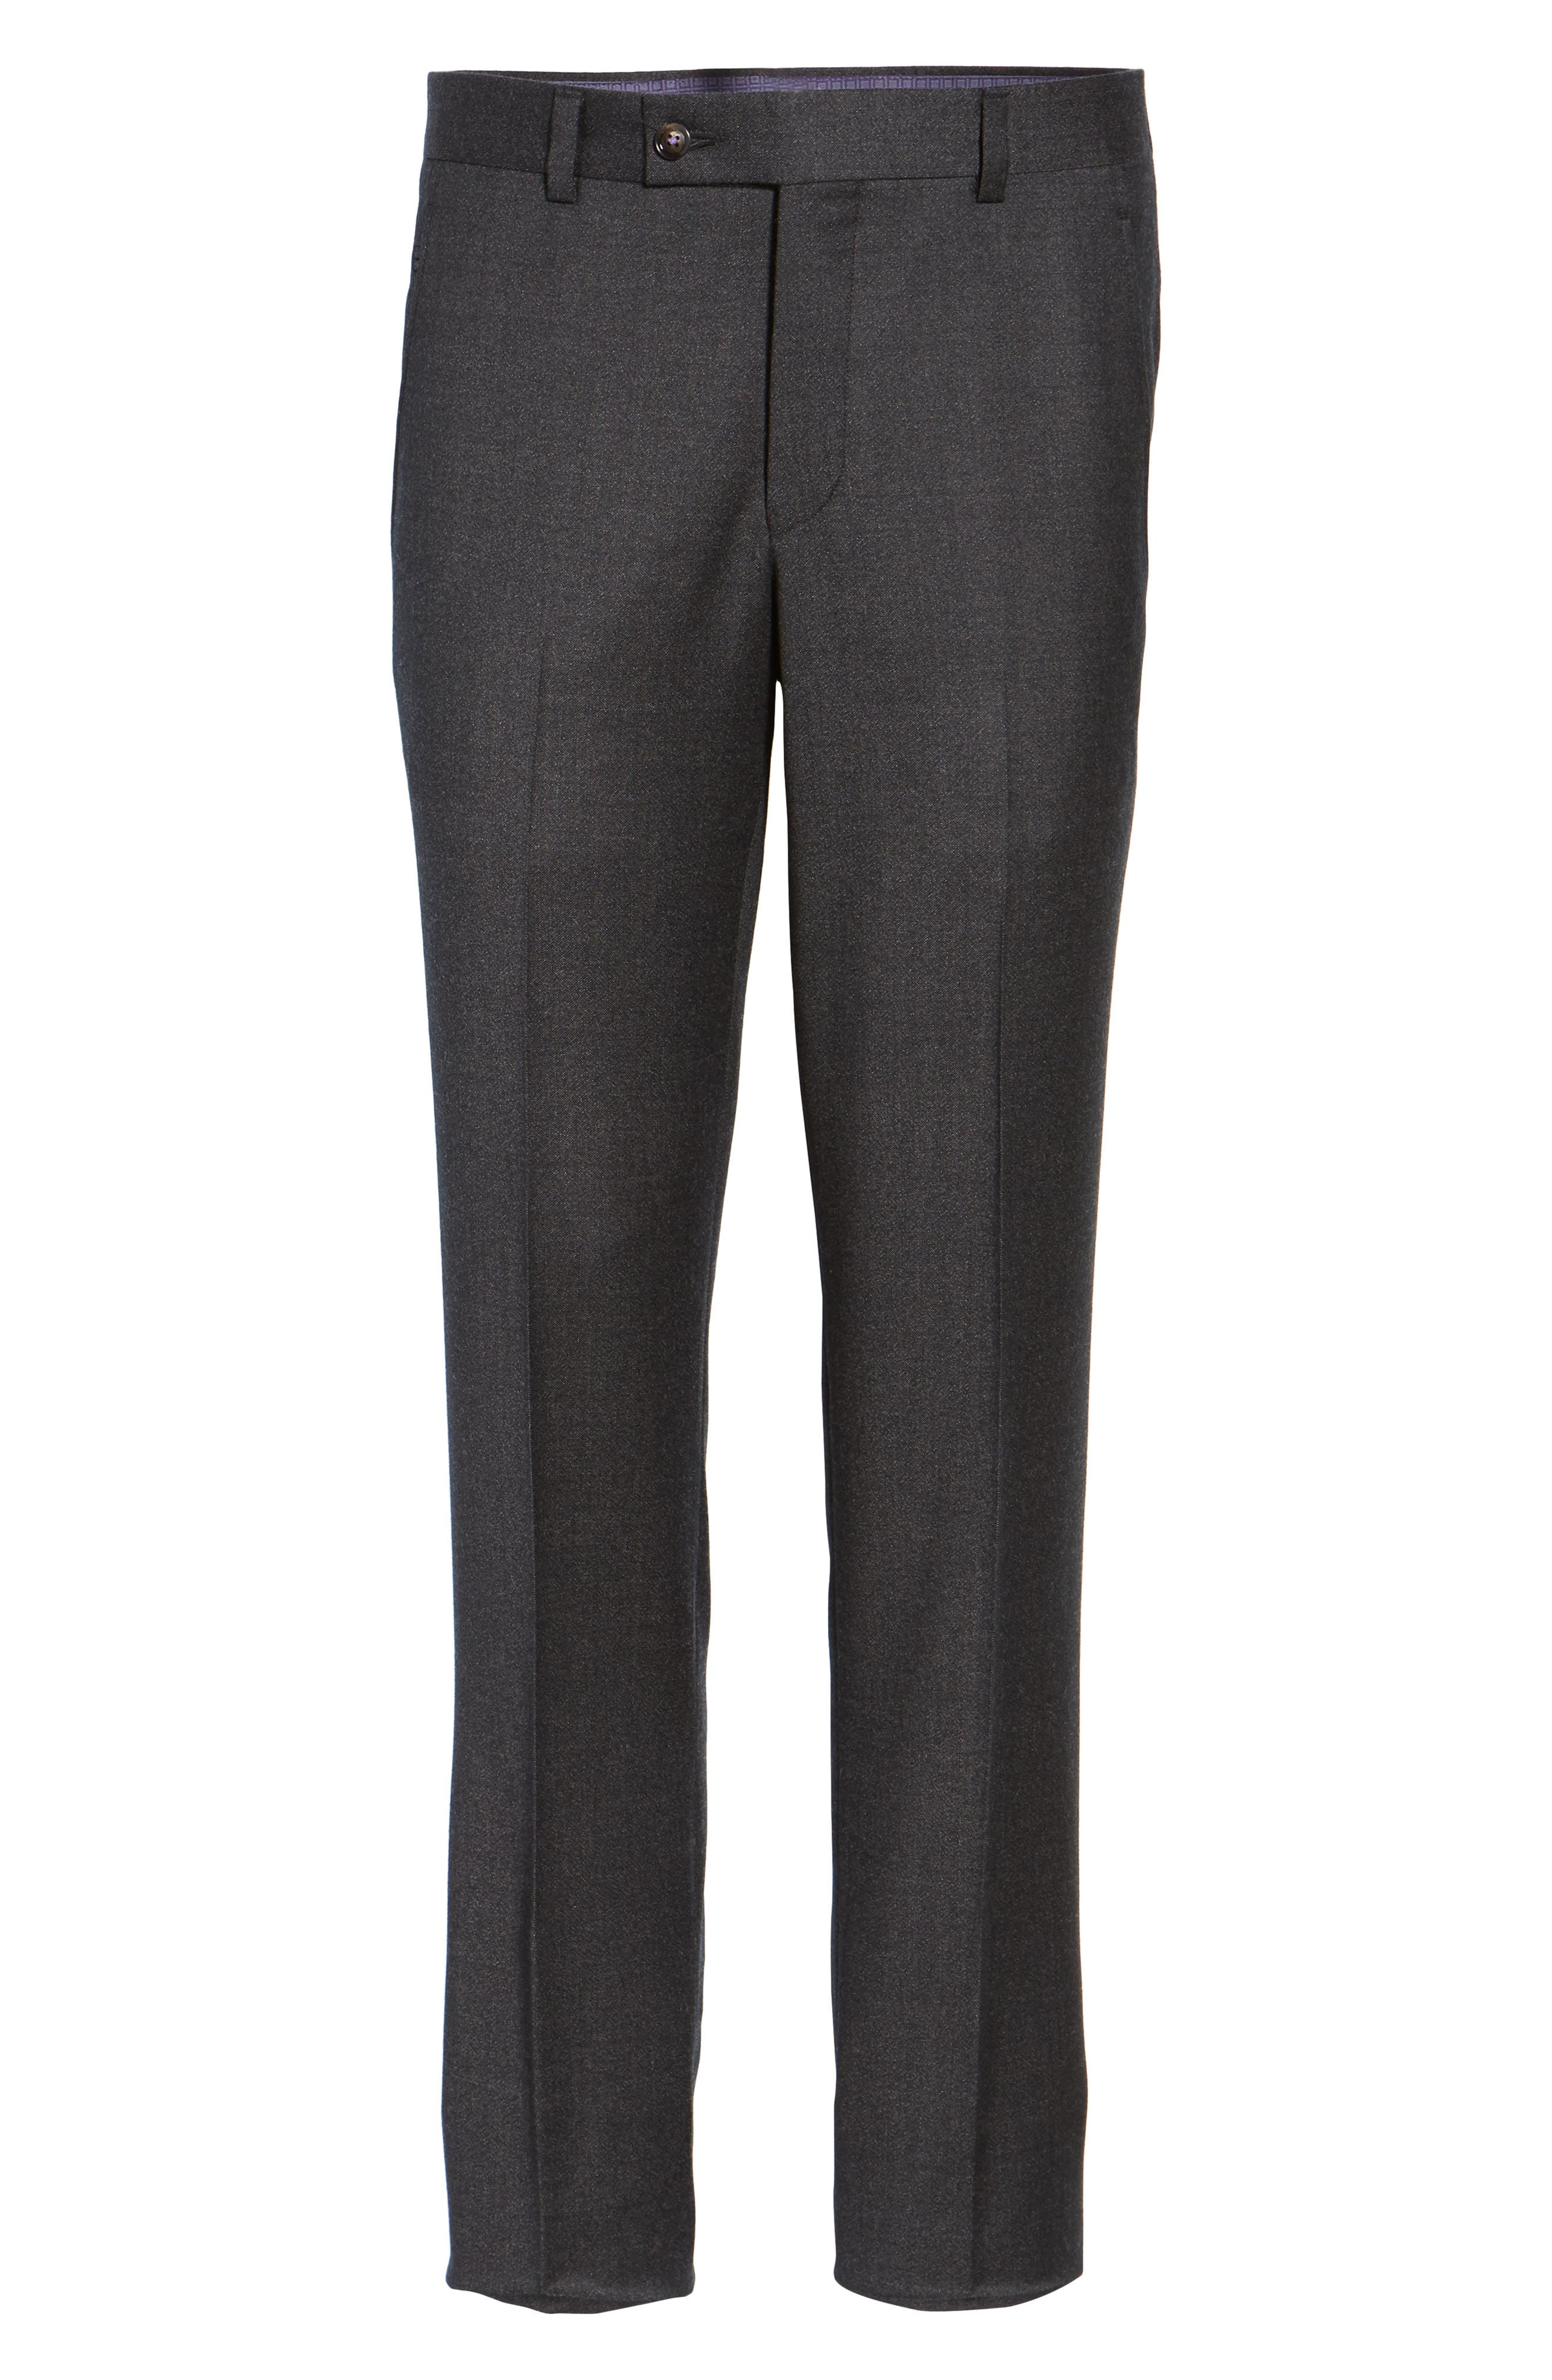 Jeremy Flat Front Solid Wool Trousers,                             Alternate thumbnail 6, color,                             050